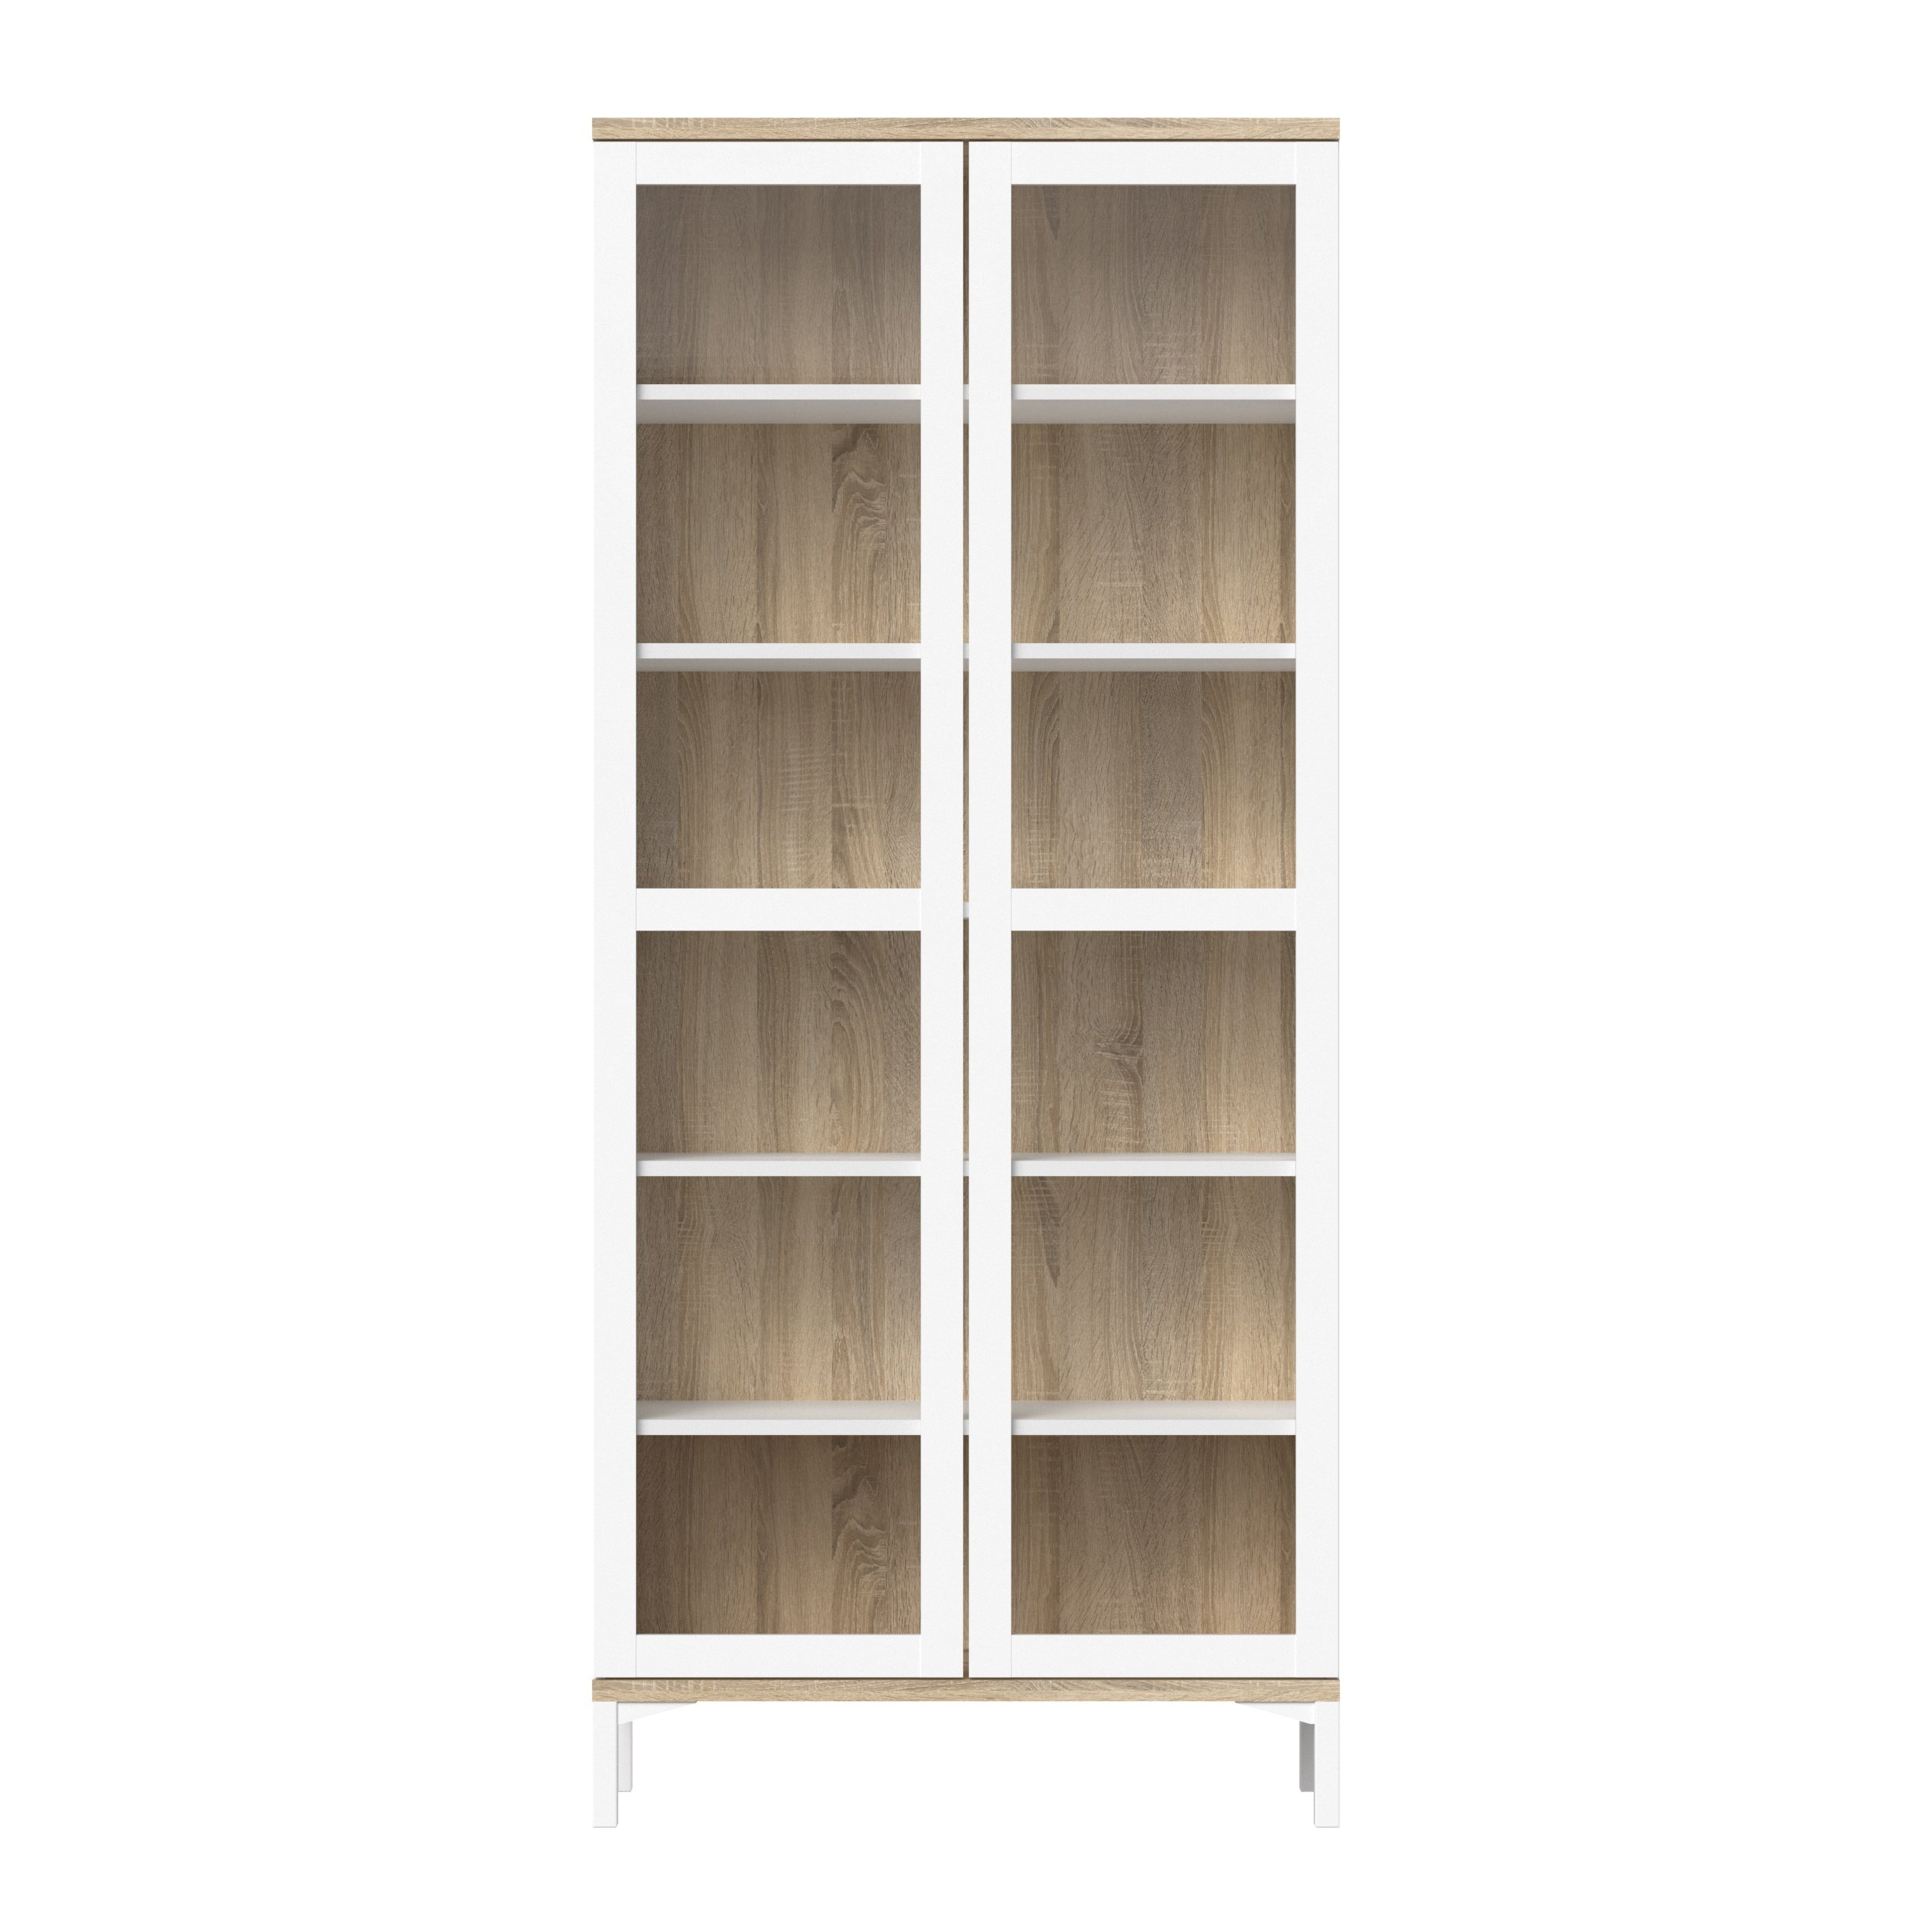 Tvilum Aberdeen 2 Door China Cabinet, White/Oak Structure by Tvilum